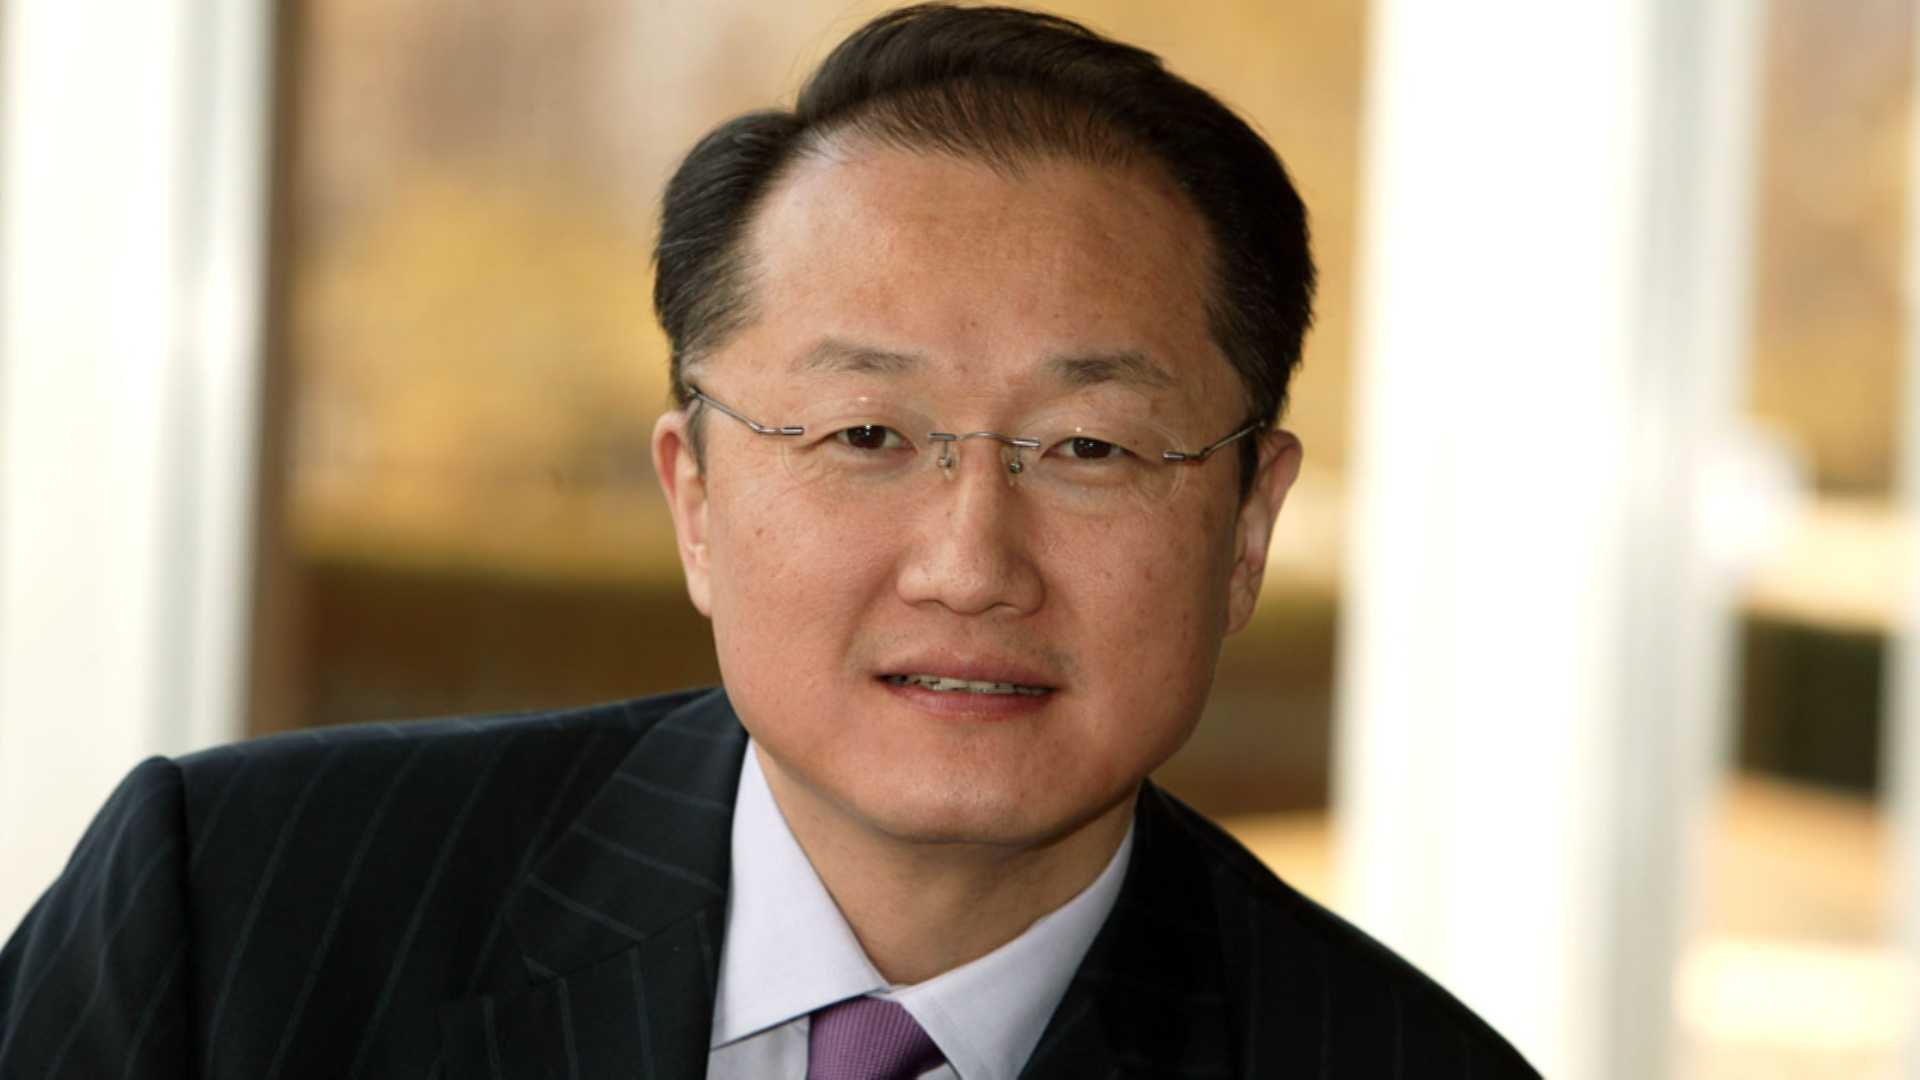 Dr. Jim Yong Kim became Dartmouth College's 17th president in 2009. President Barack Obama nominated Kim to lead the World Bank in March 2012.